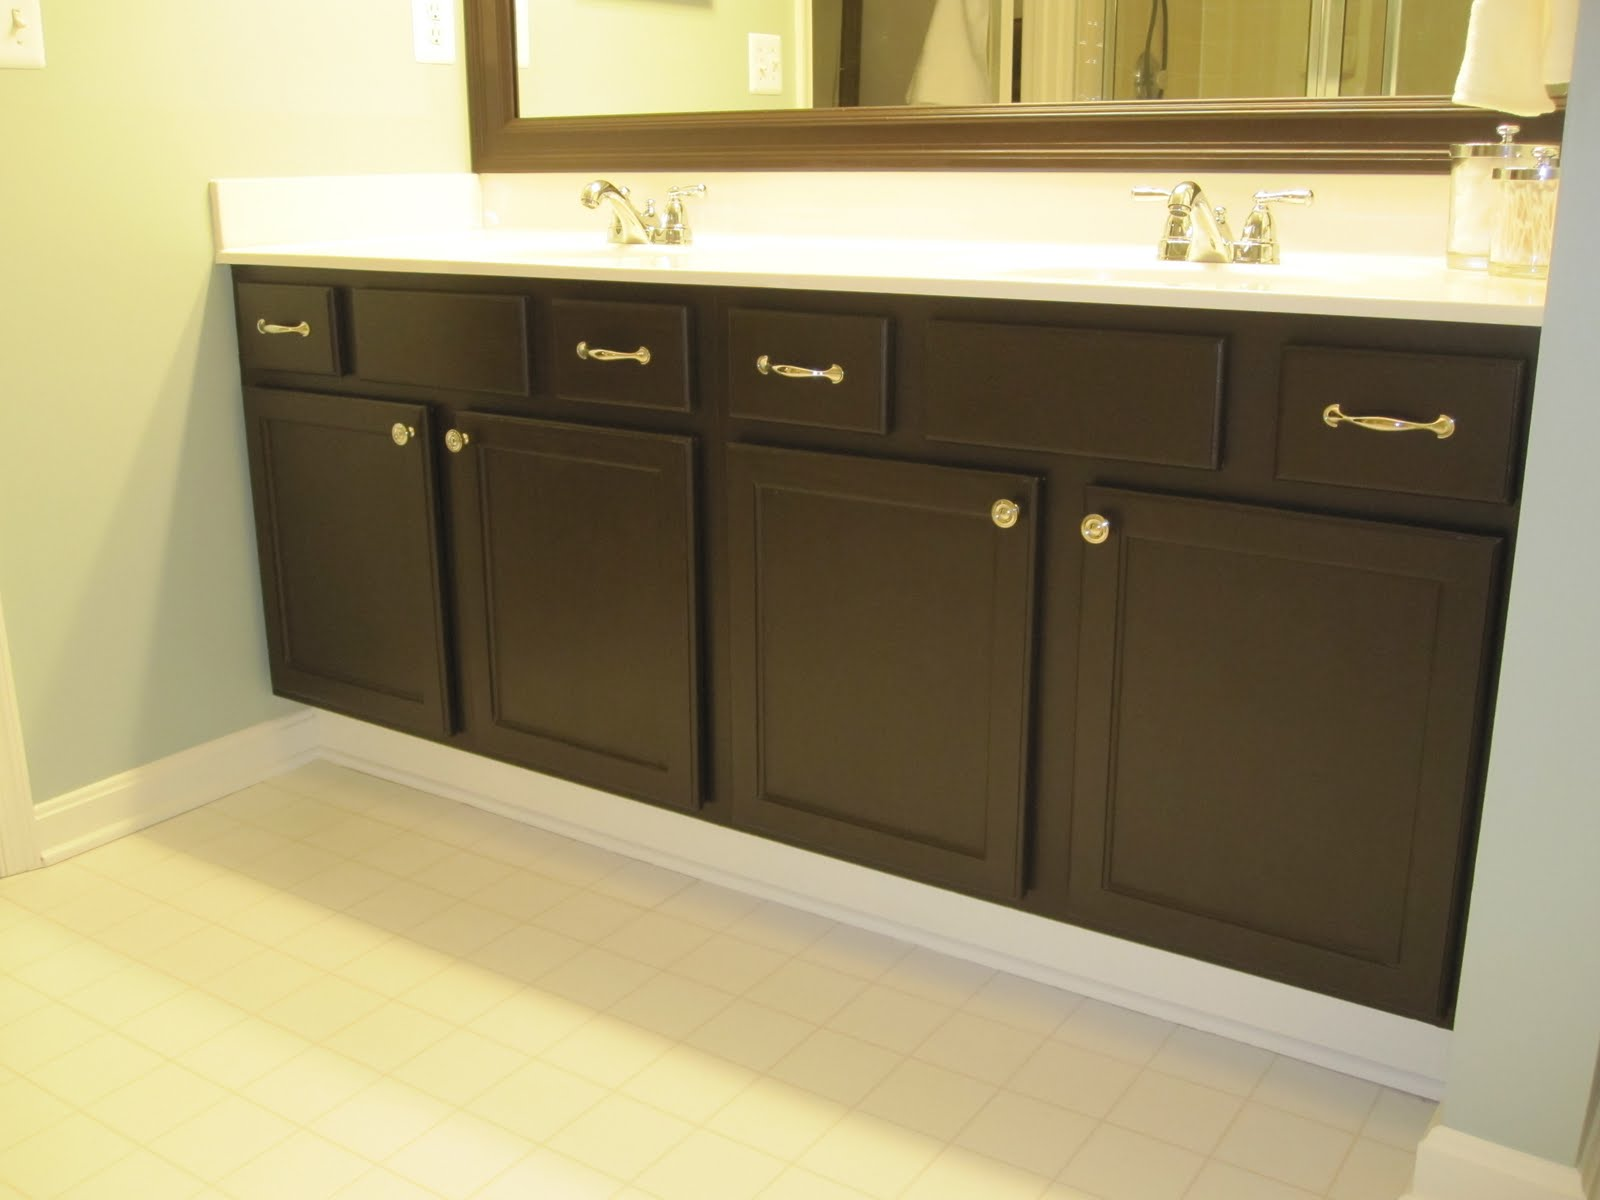 Bold Black Painting also Applied for Bathroom Vanity Painting with White Countertop and Double Sinks